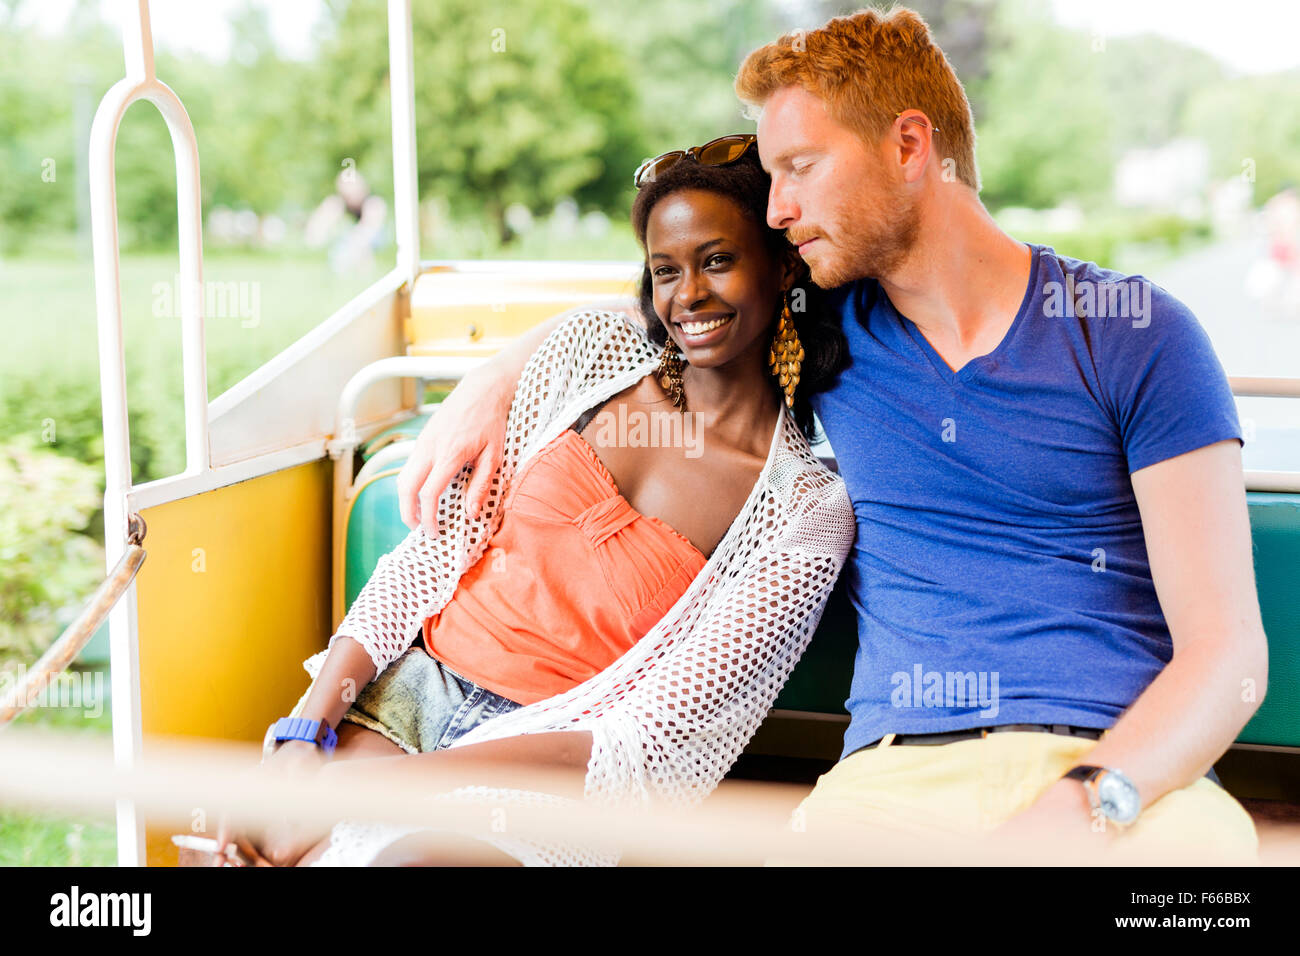 Couple in love traveling by a scenic railway and being happy outdoors - Stock Image